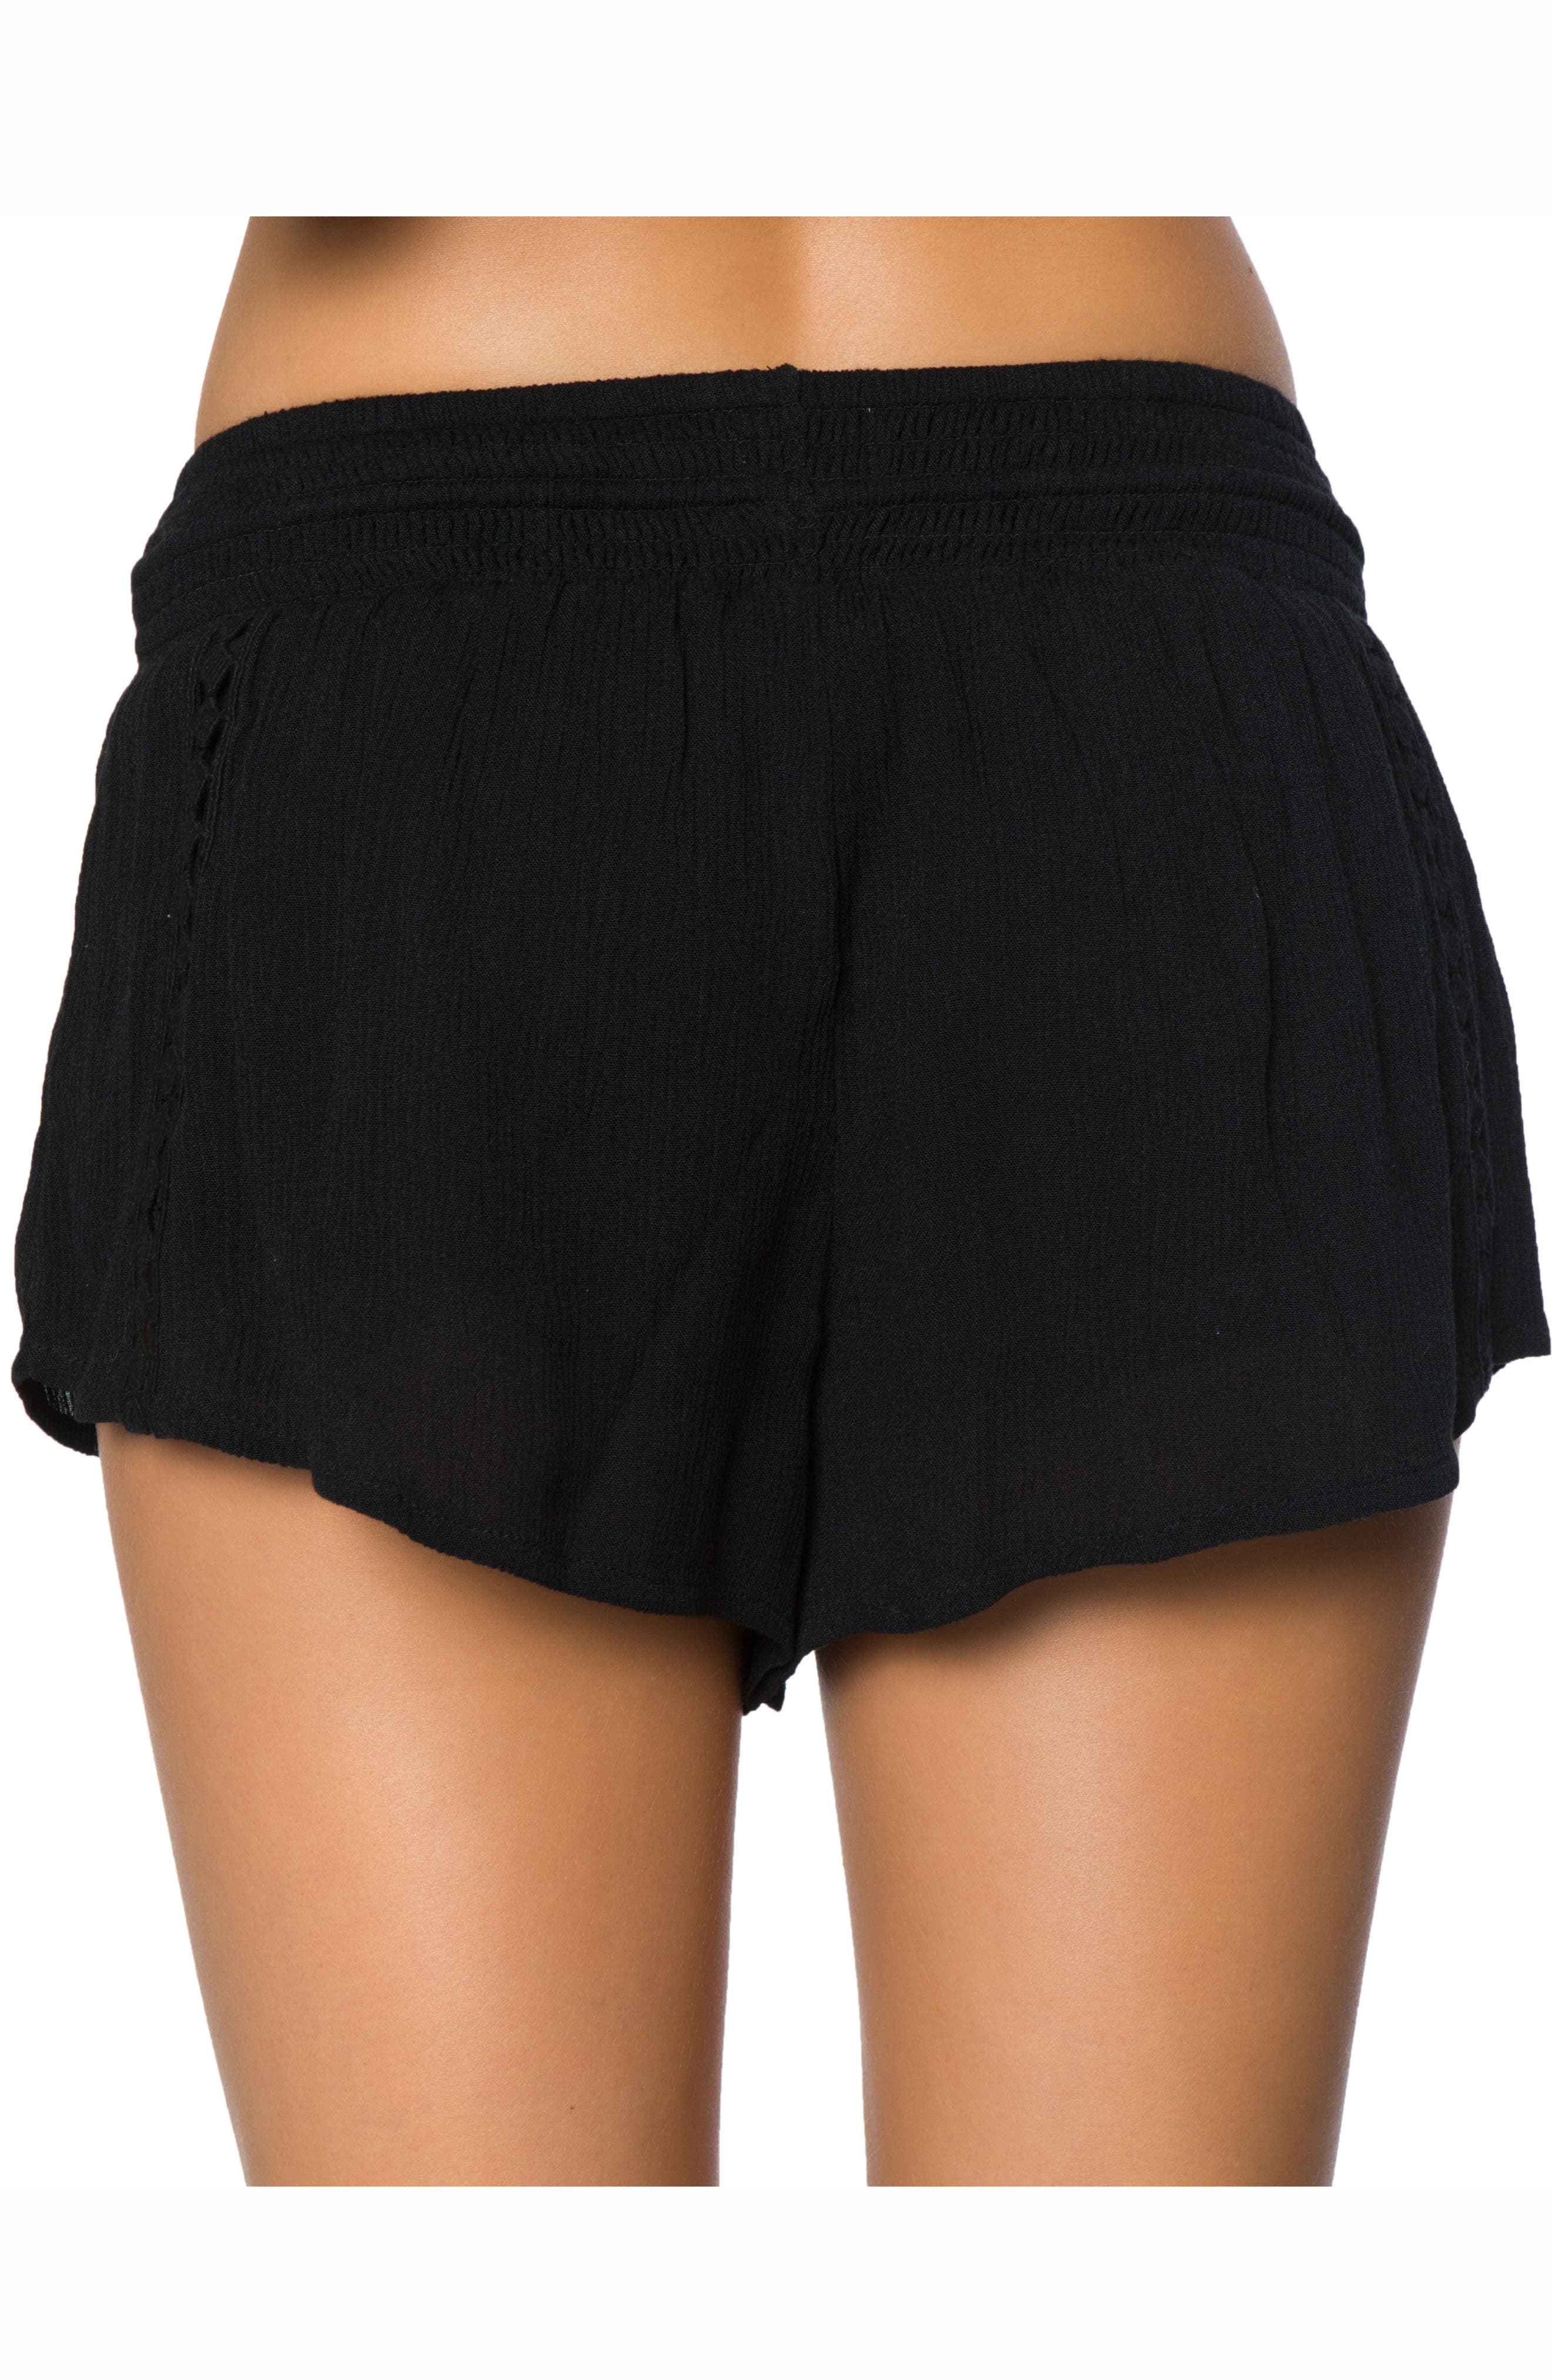 Elise Crochet Trim Shorts,                             Alternate thumbnail 2, color,                             001